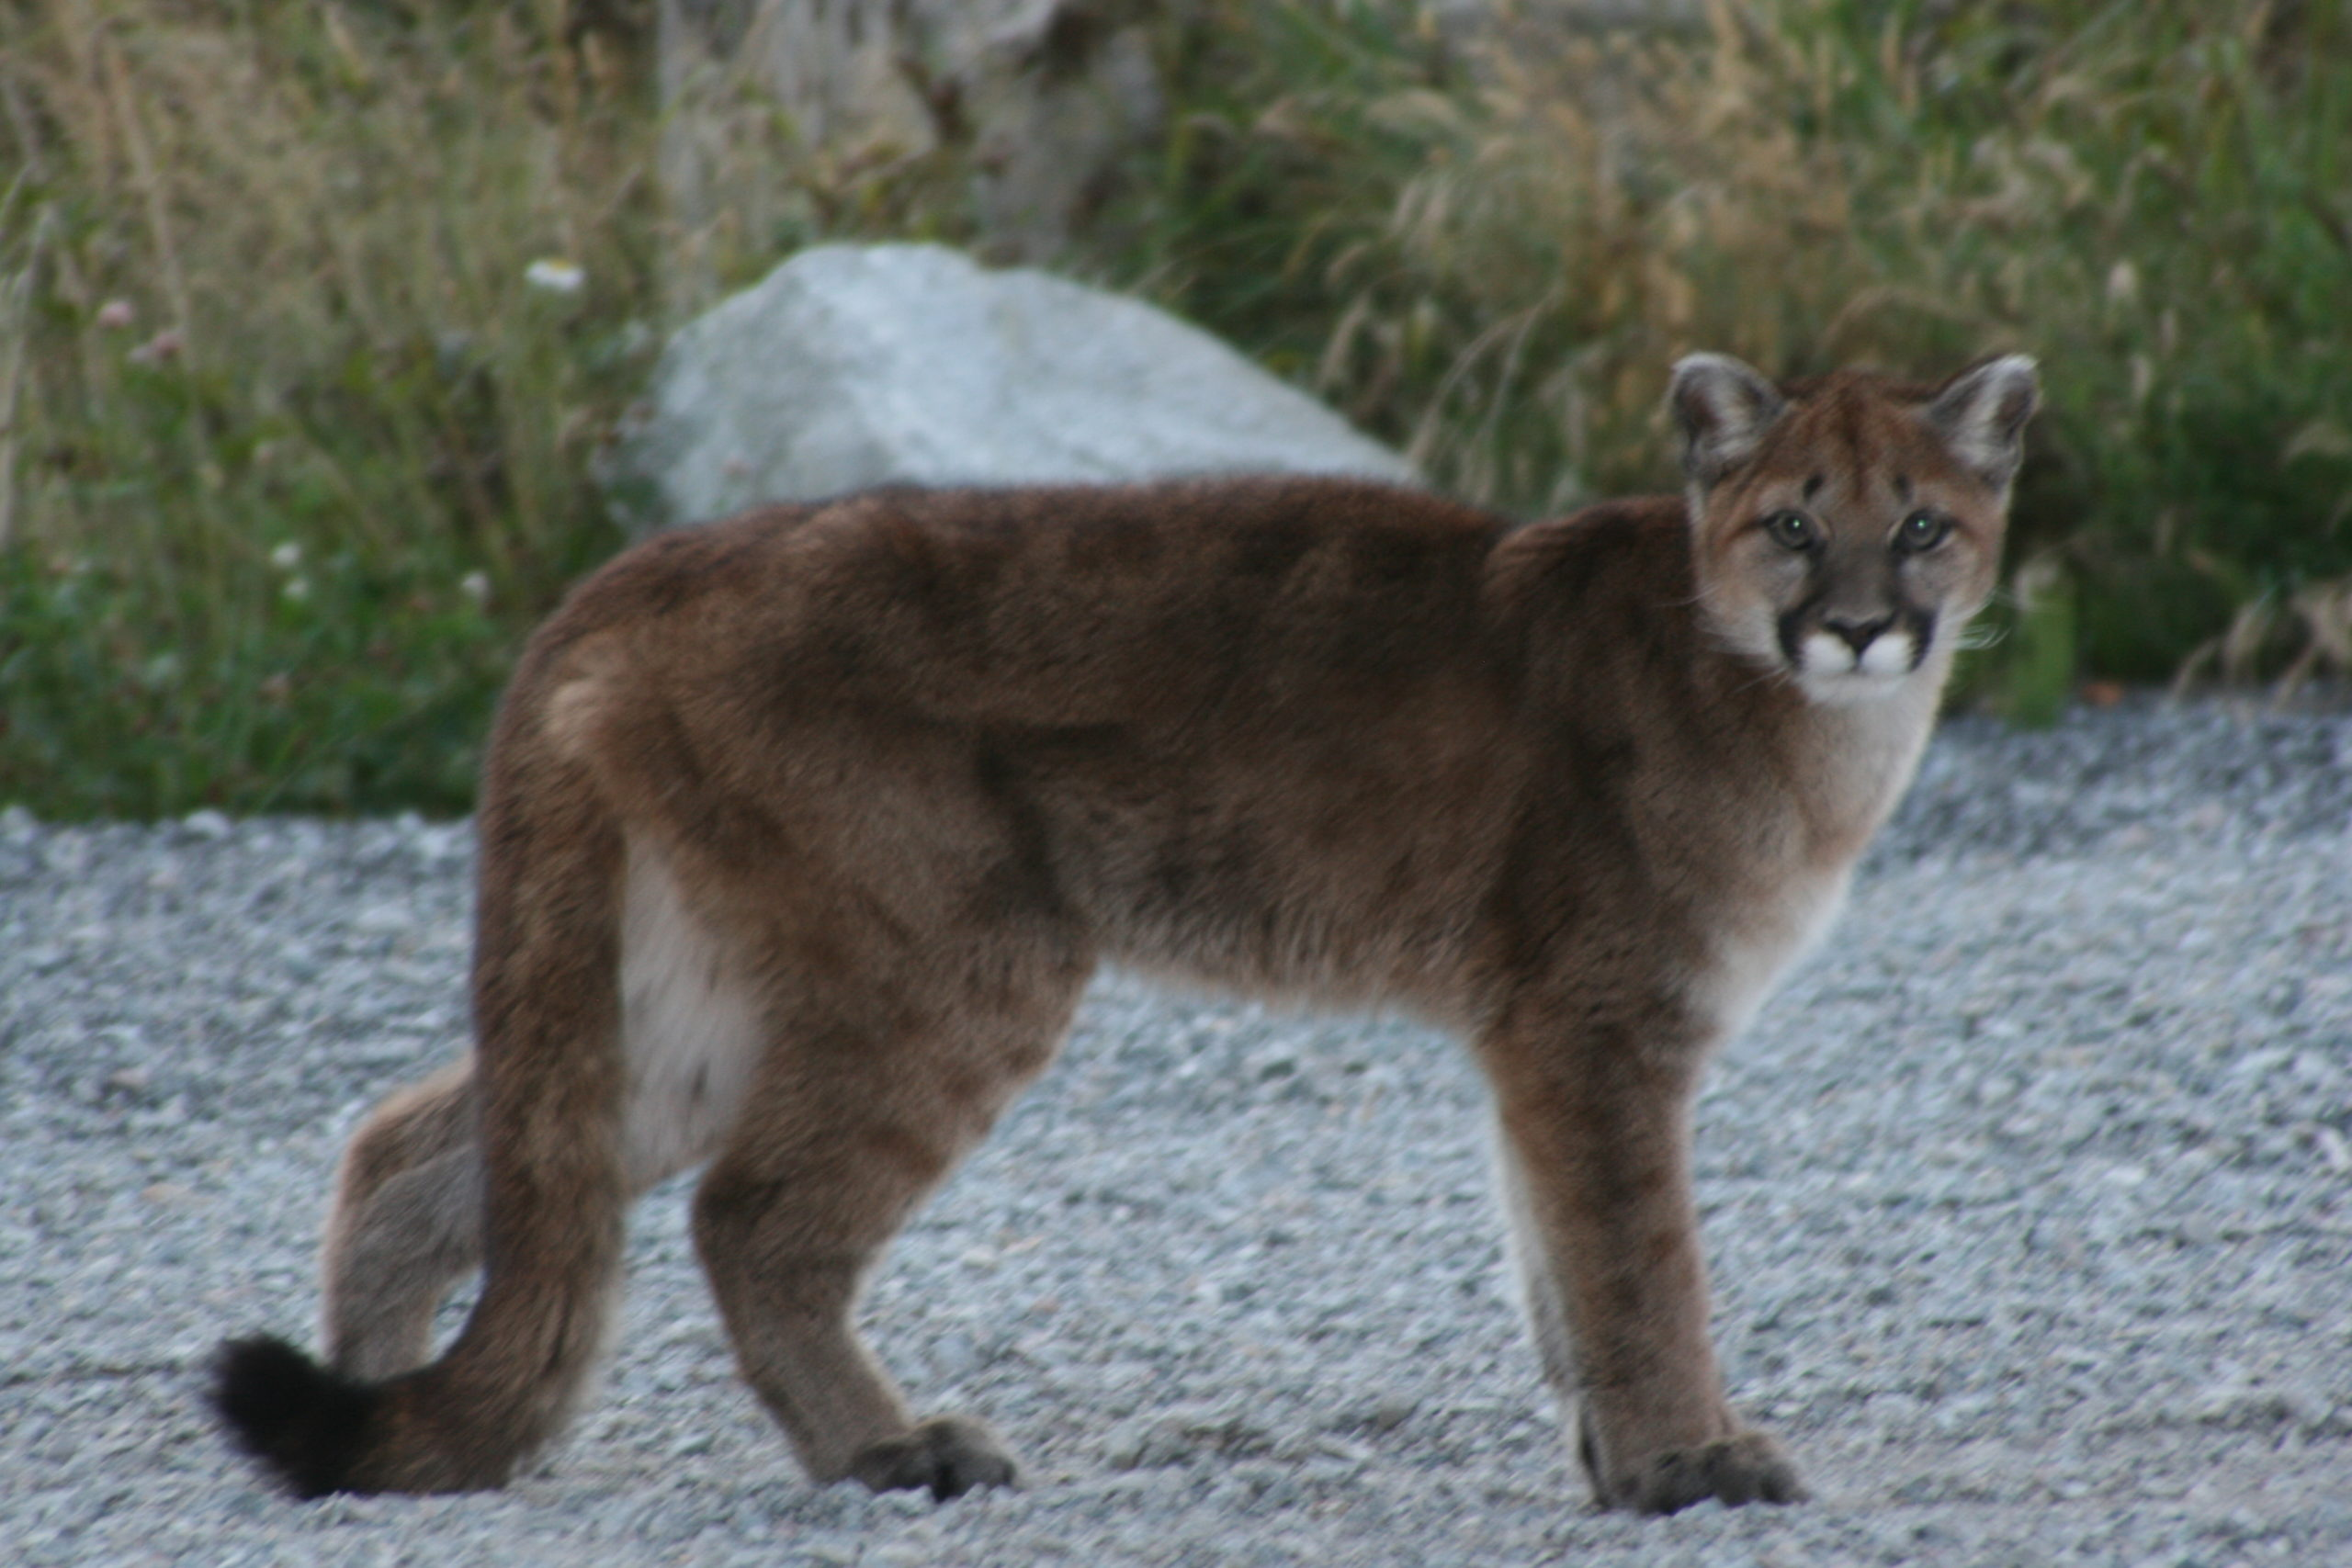 Several sightings of cougar on Fernie's Lazy Lizard trail